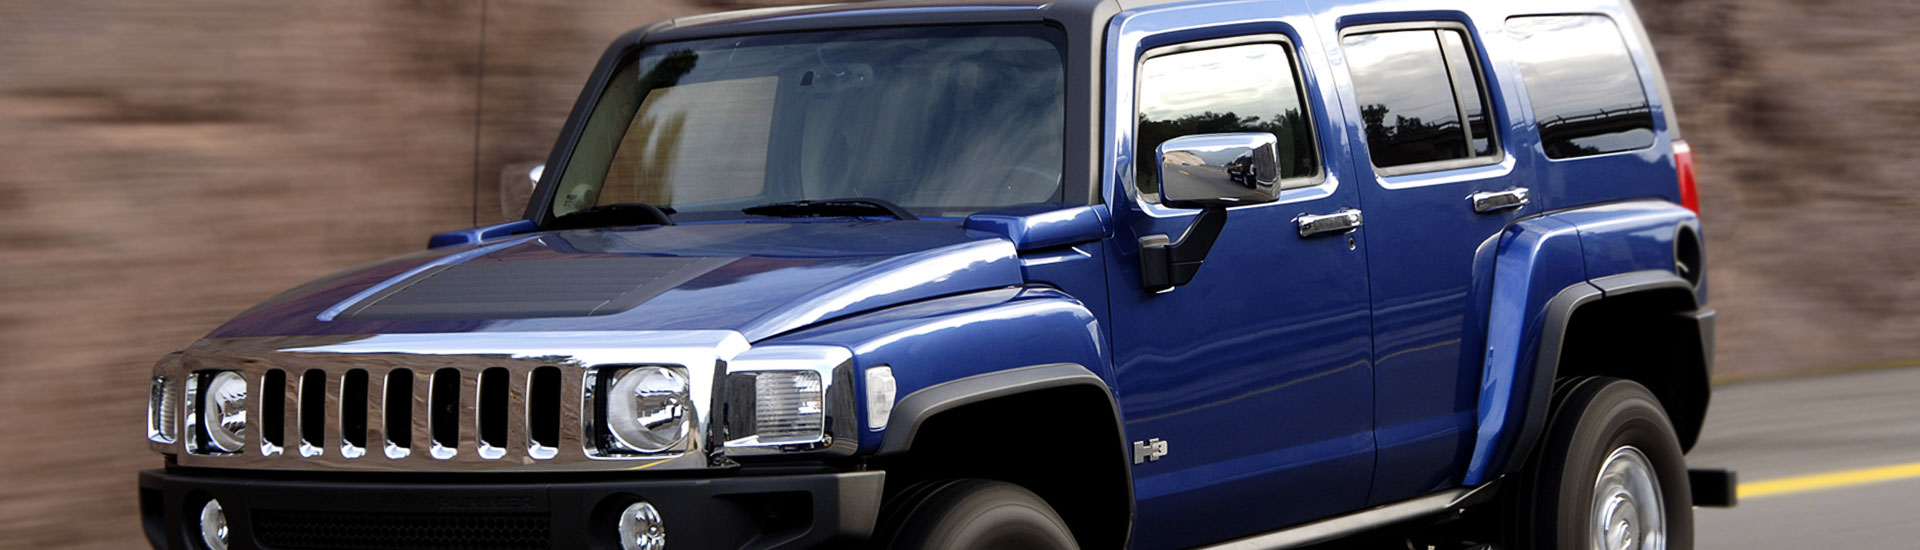 Hummer H3 Window Tint